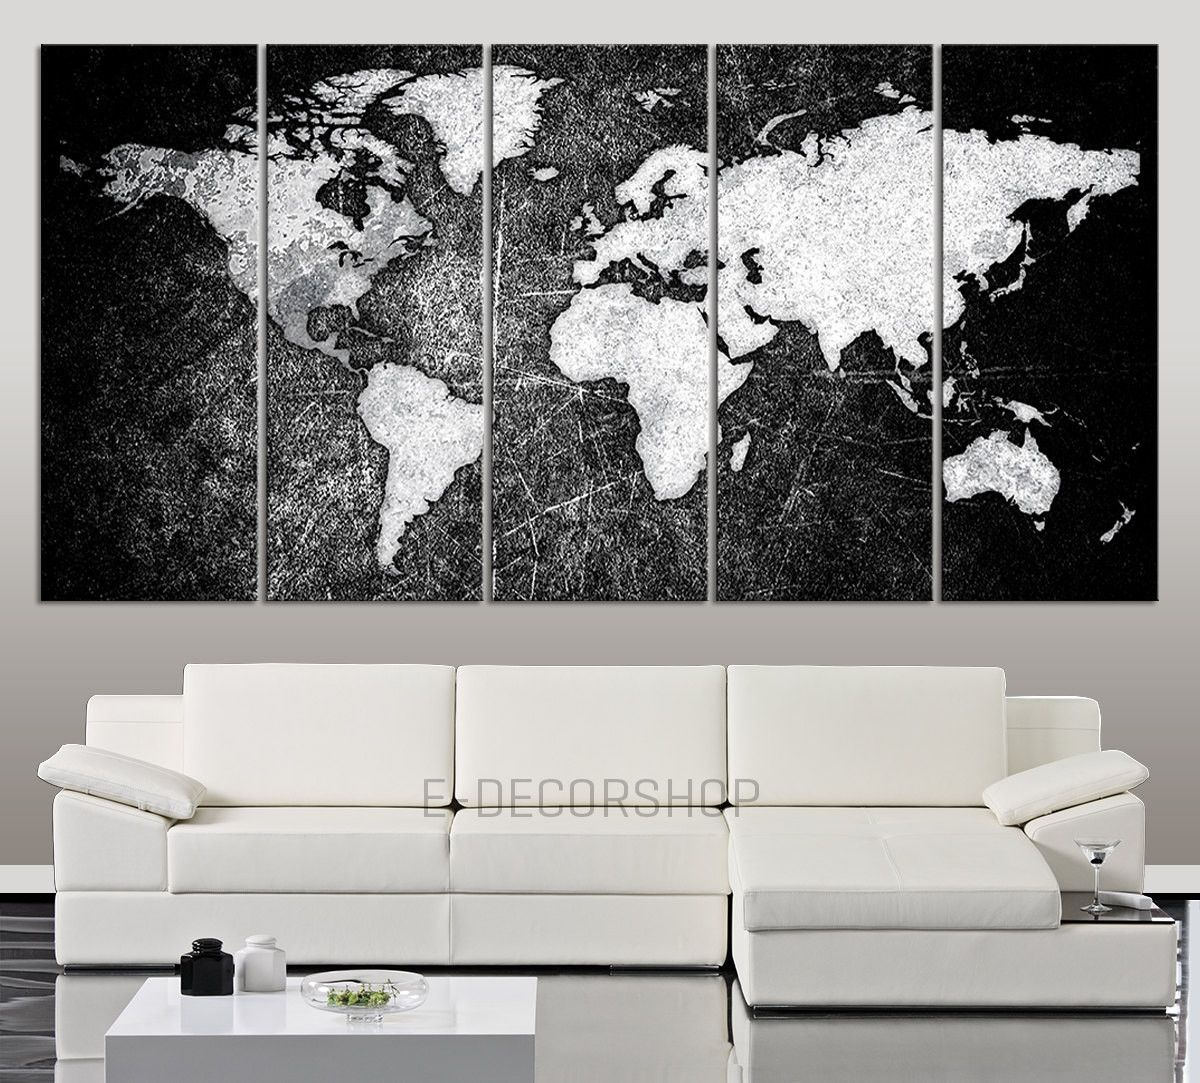 Large canvas art black white world map canvas print world map 5 large canvas art black white world map canvas print world map 5 piece canvas art print gumiabroncs Gallery